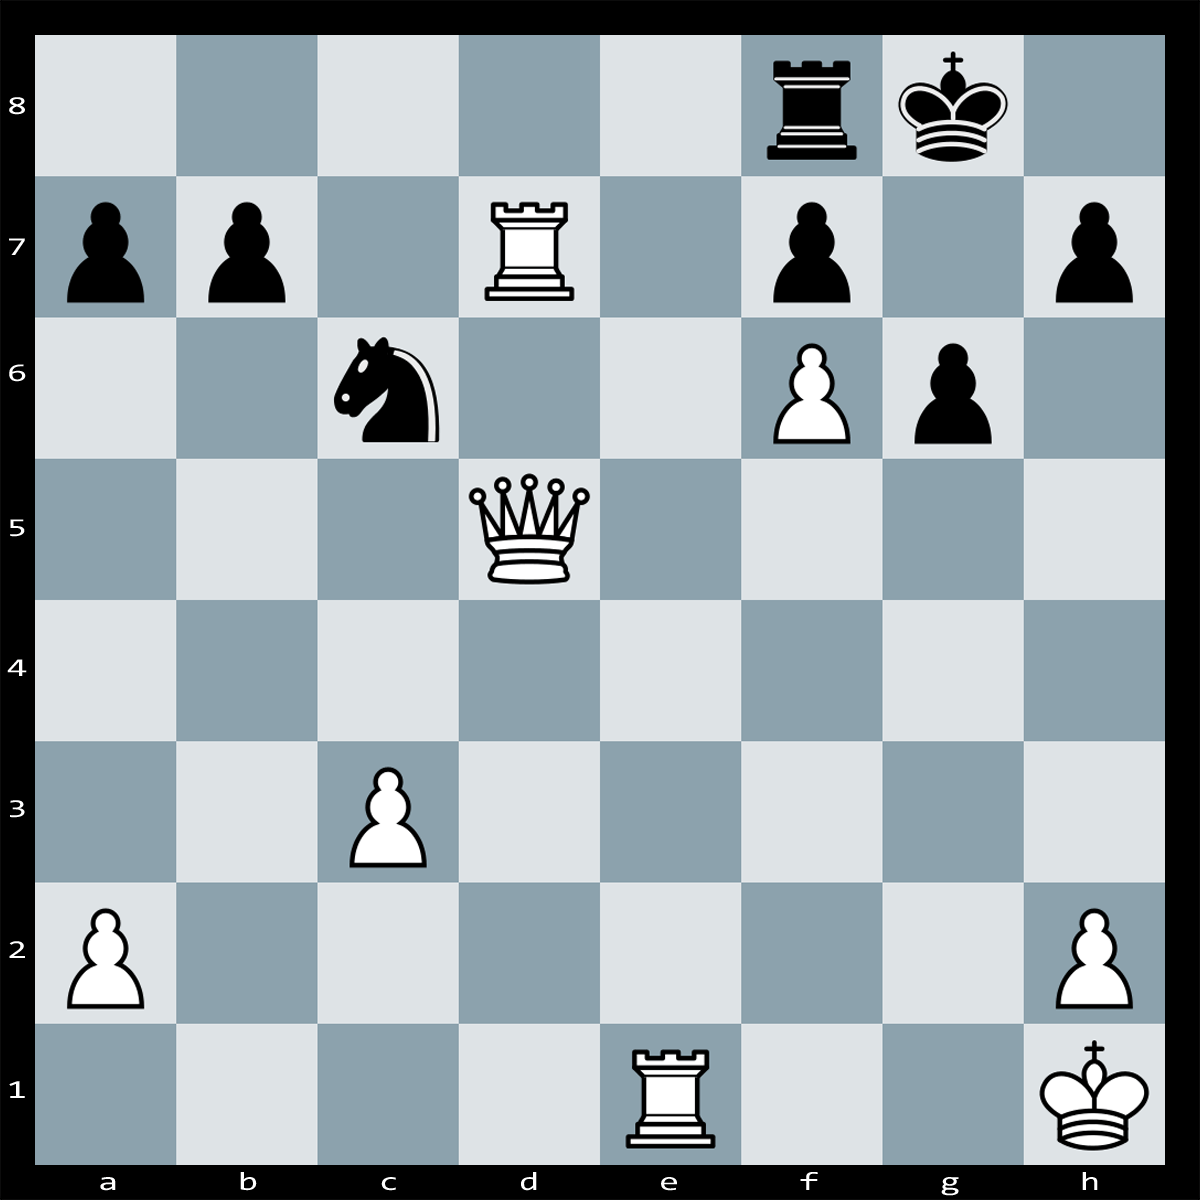 Mate in Three moves, White to Play | Chess Puzzle #120